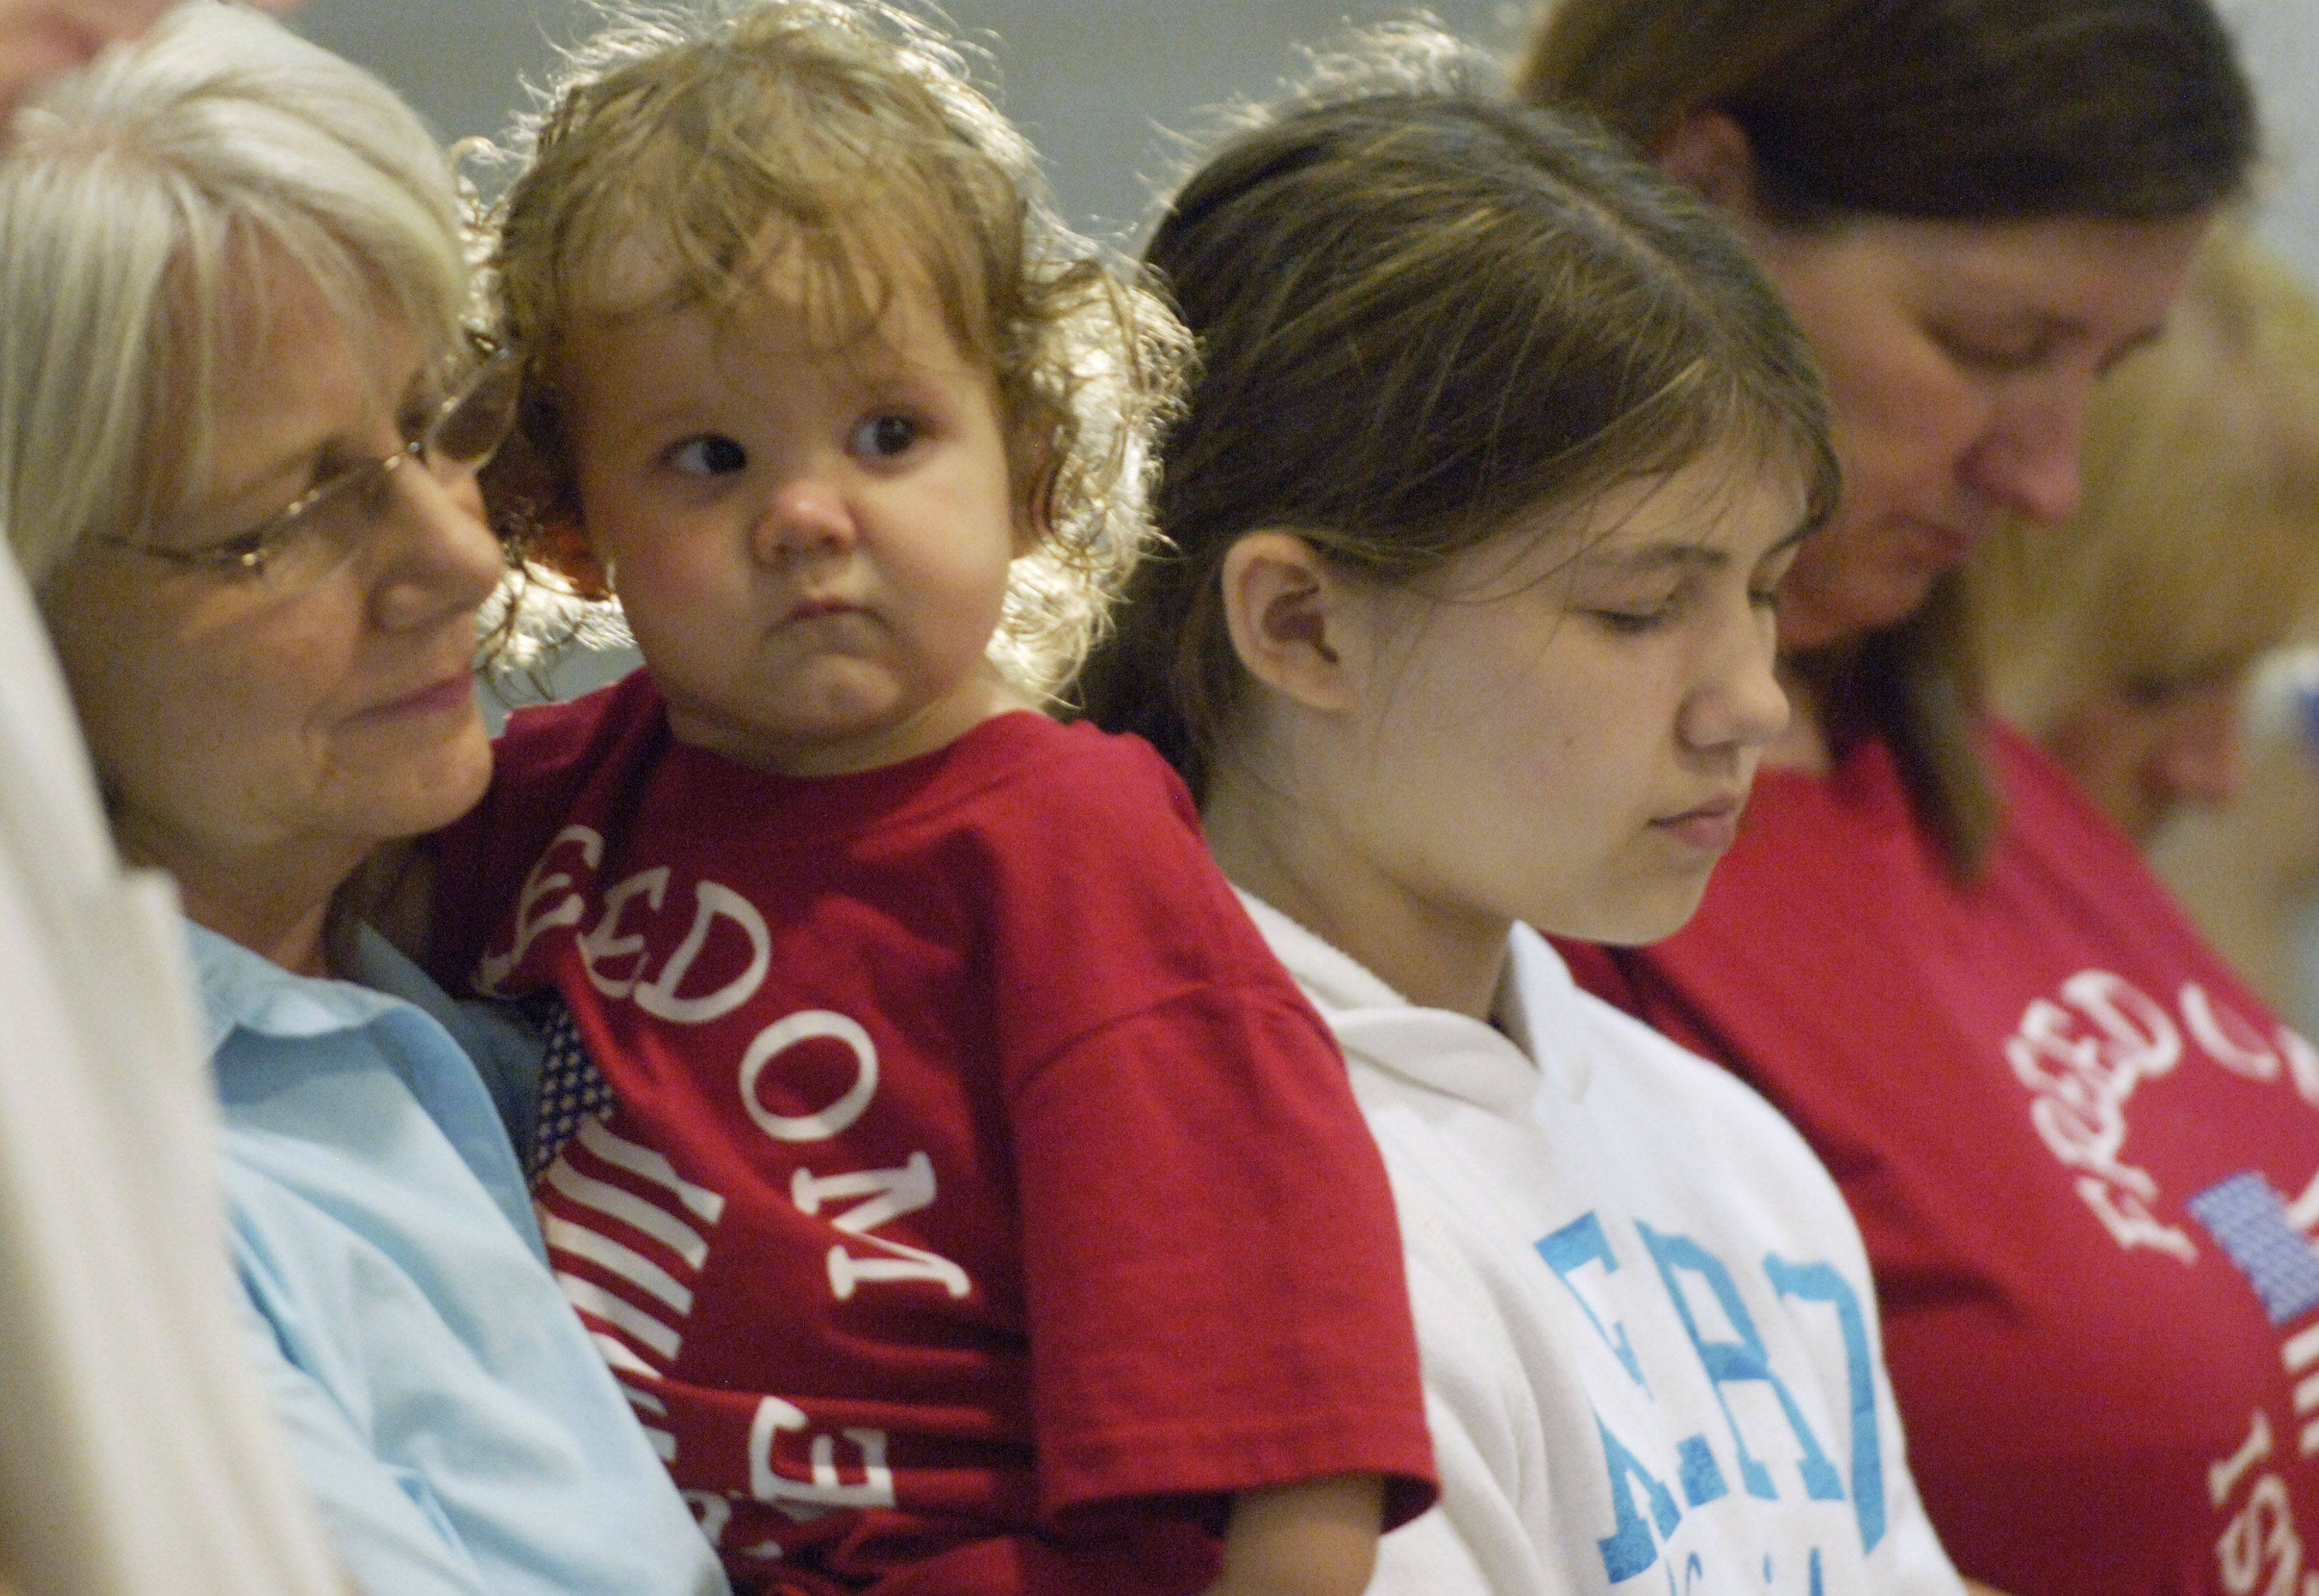 Mikayla Stack, age 18 months, is held by her grandmother, Linda Stack, at the dedication of a gym at Christian Liberty Academy in honor of Mikayla's father, James Stack. To their right are Joanne Savage and her mother, Dawn Hedrick, Mikayla's maternal grandmother.